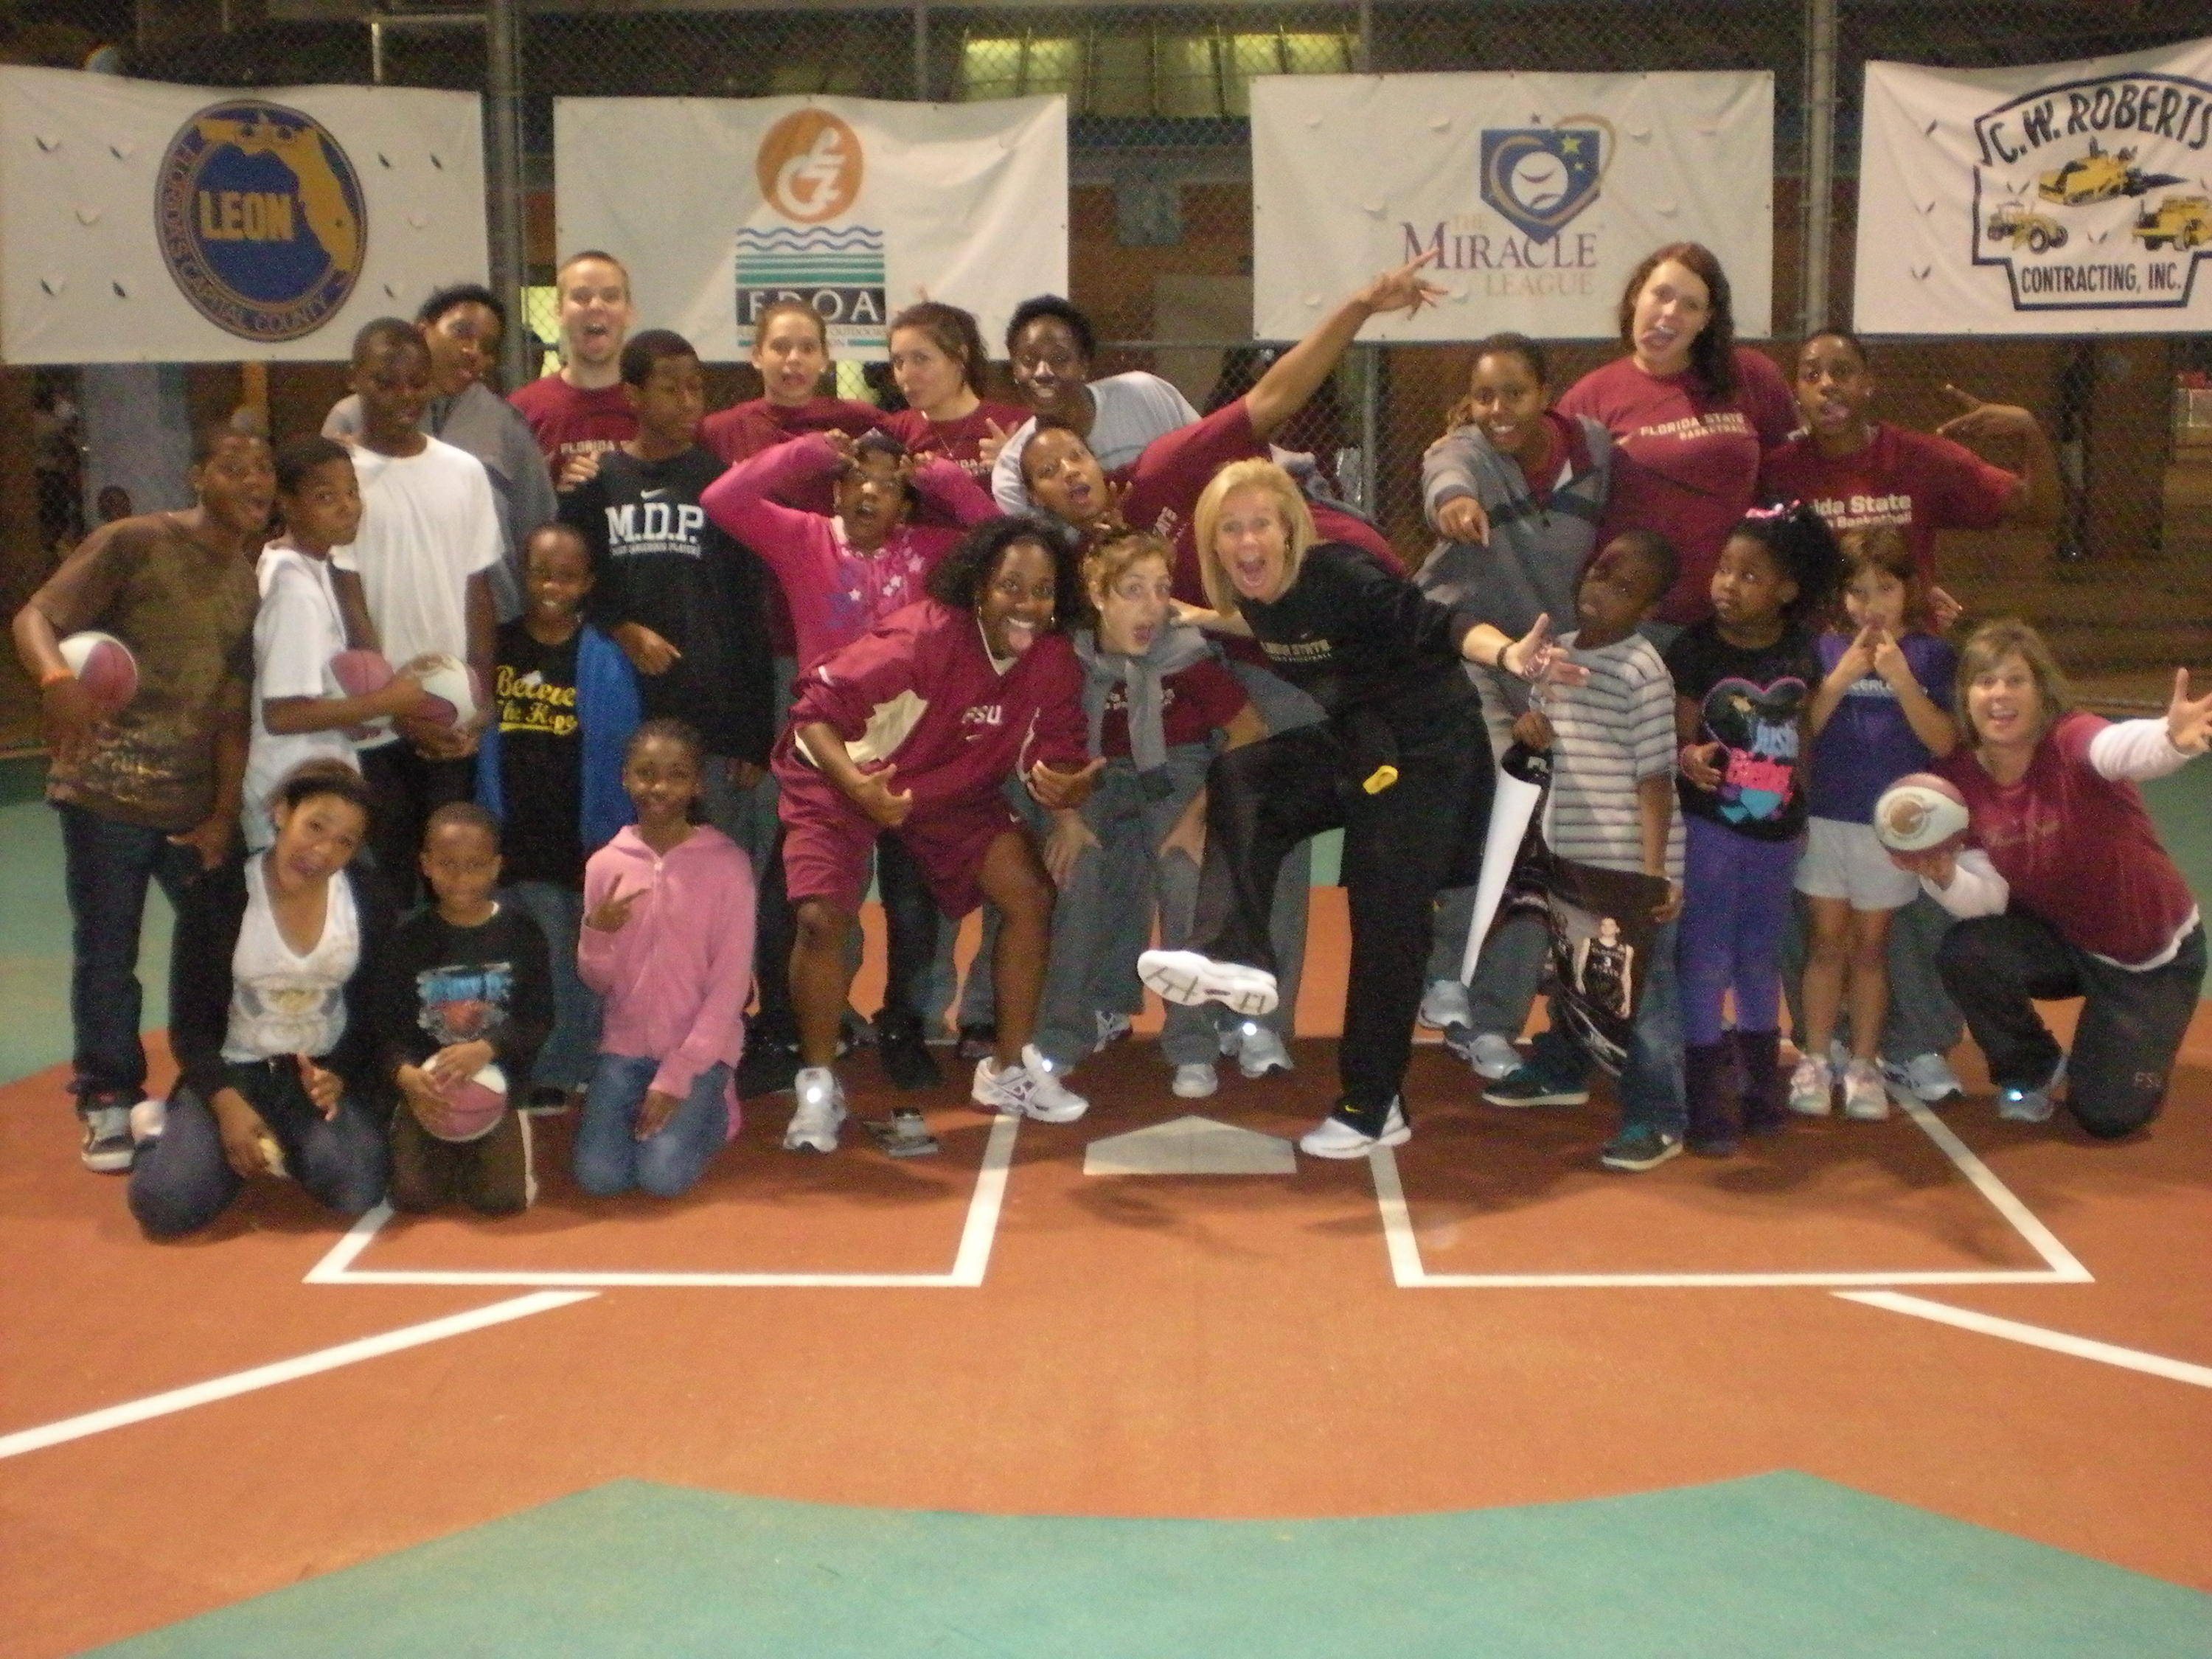 The Seminoles take volunteering in the community very seriously.